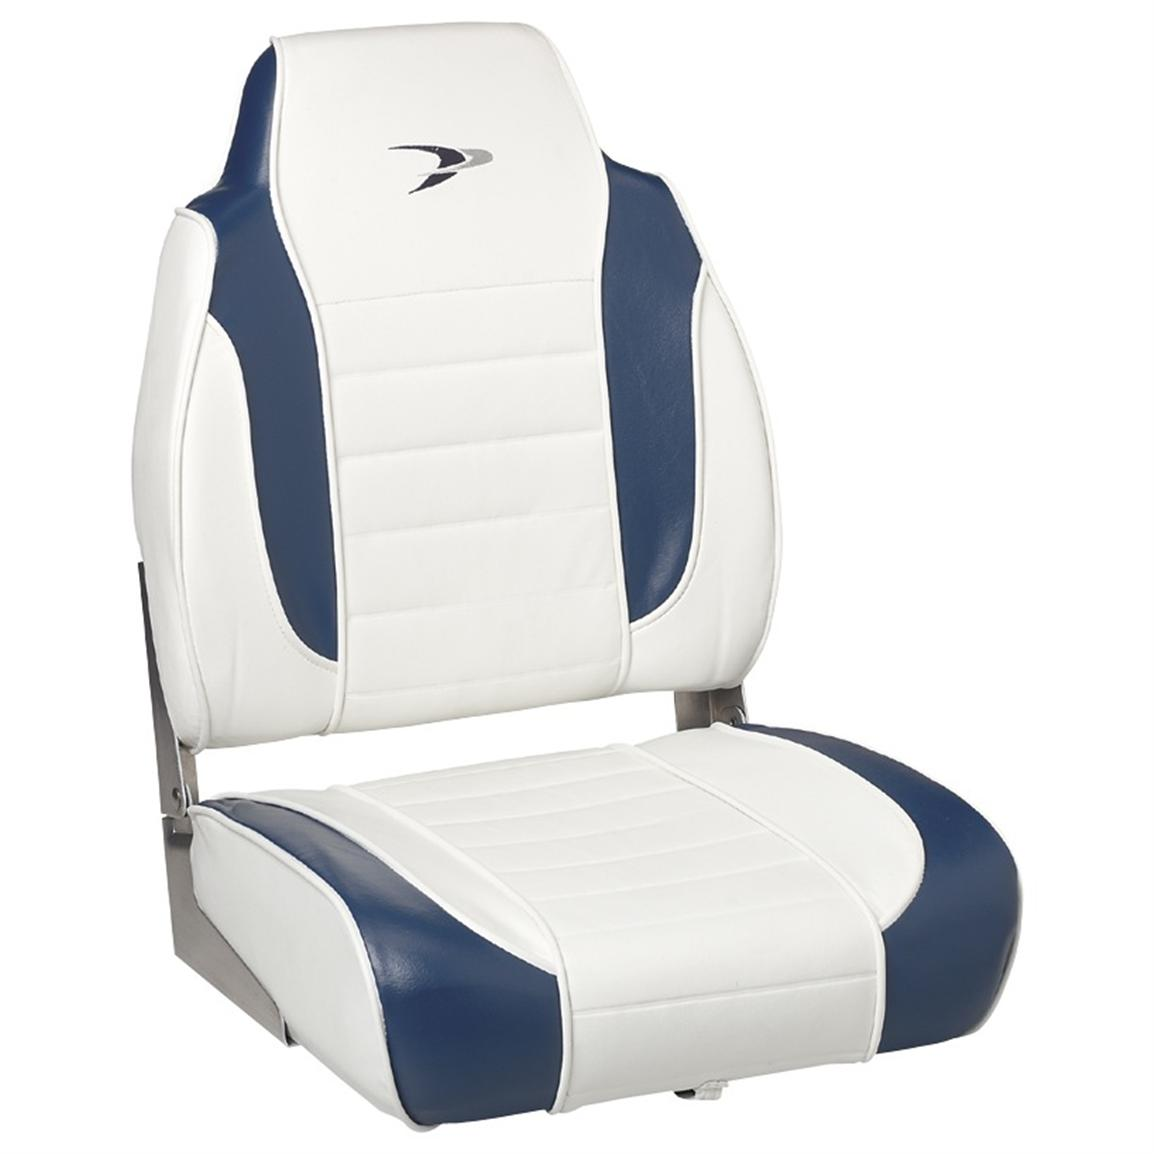 Wise® Embroidered Logo Hi-back Fishing Boat Seat, White / Midnight